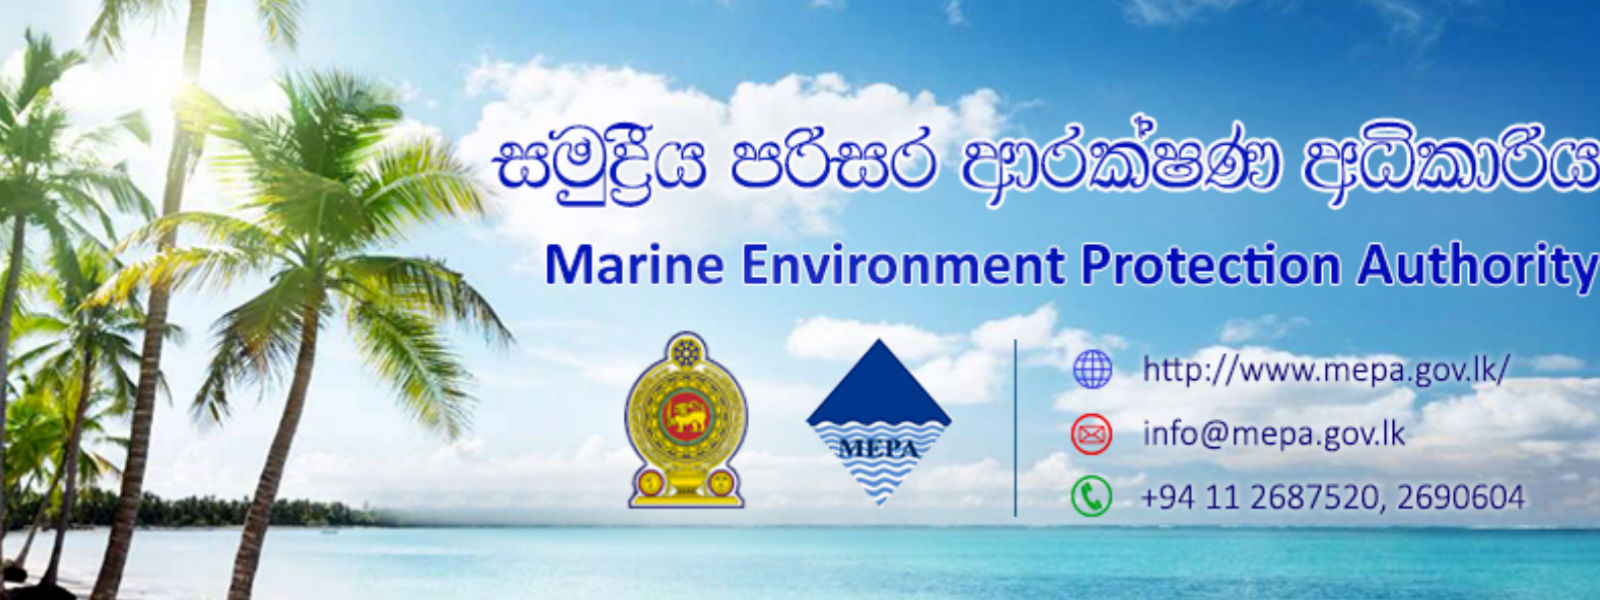 Sri Lanka is unable to protect its maritime boundary from waste disposal by ships